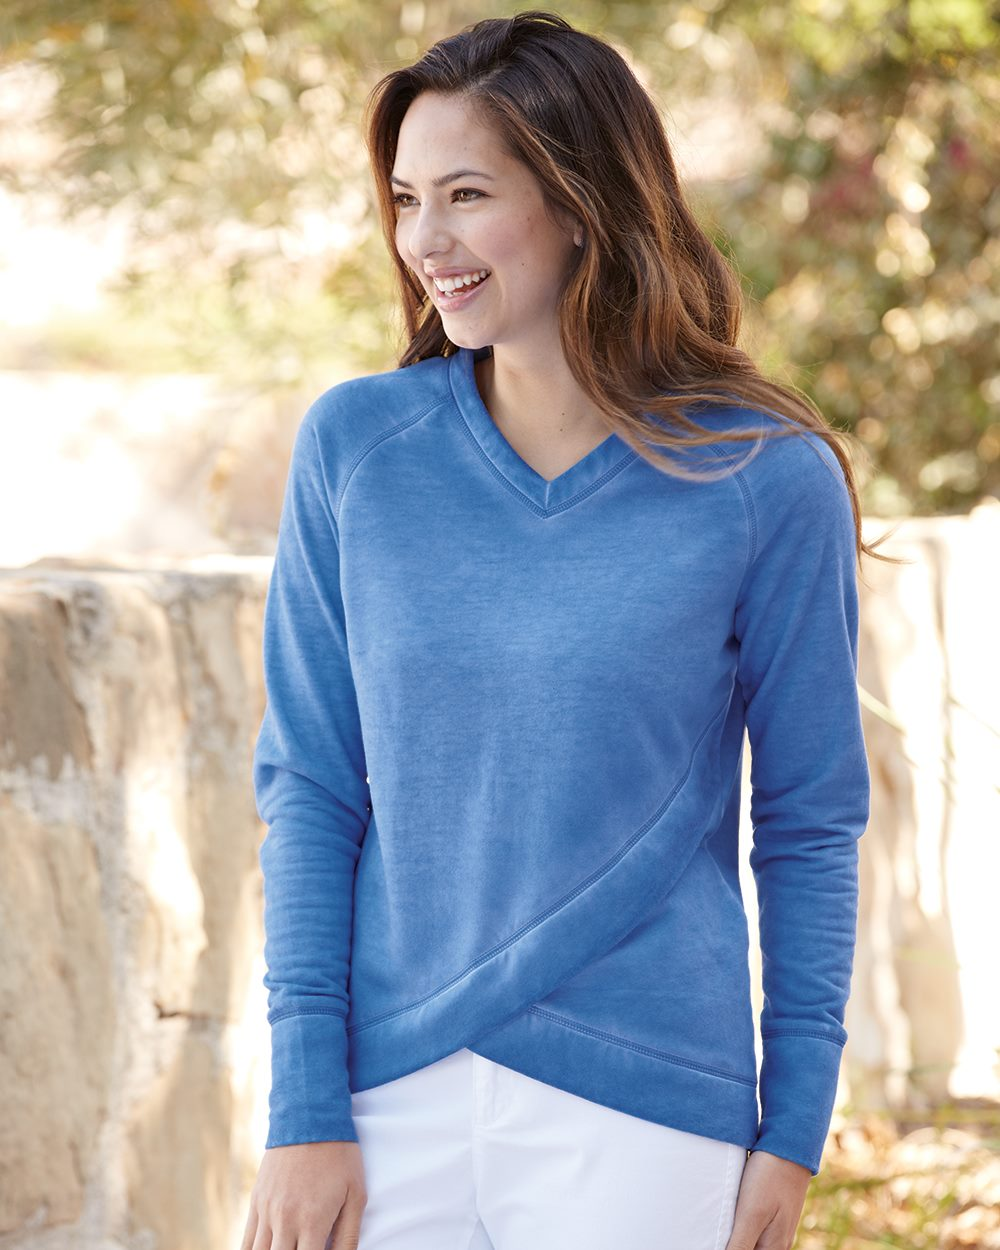 J. America 8666 - Women's Oasis Wash French Terry Criss Cross V Neck Sweatshirt